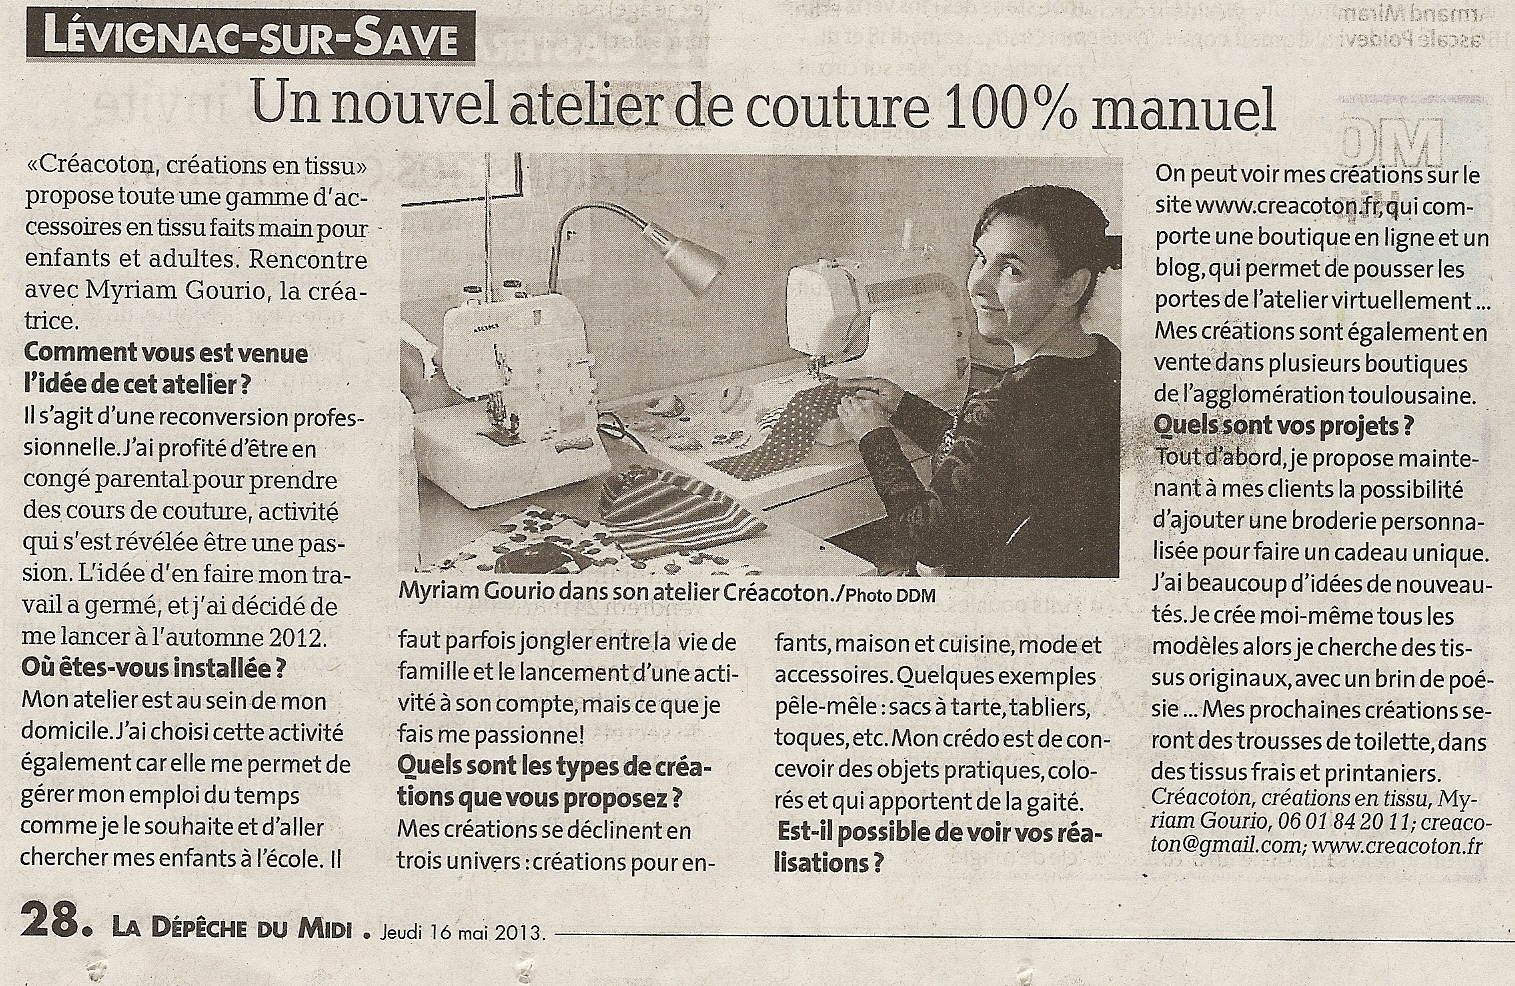 creacoton-article-depeche-mai2013jpeg